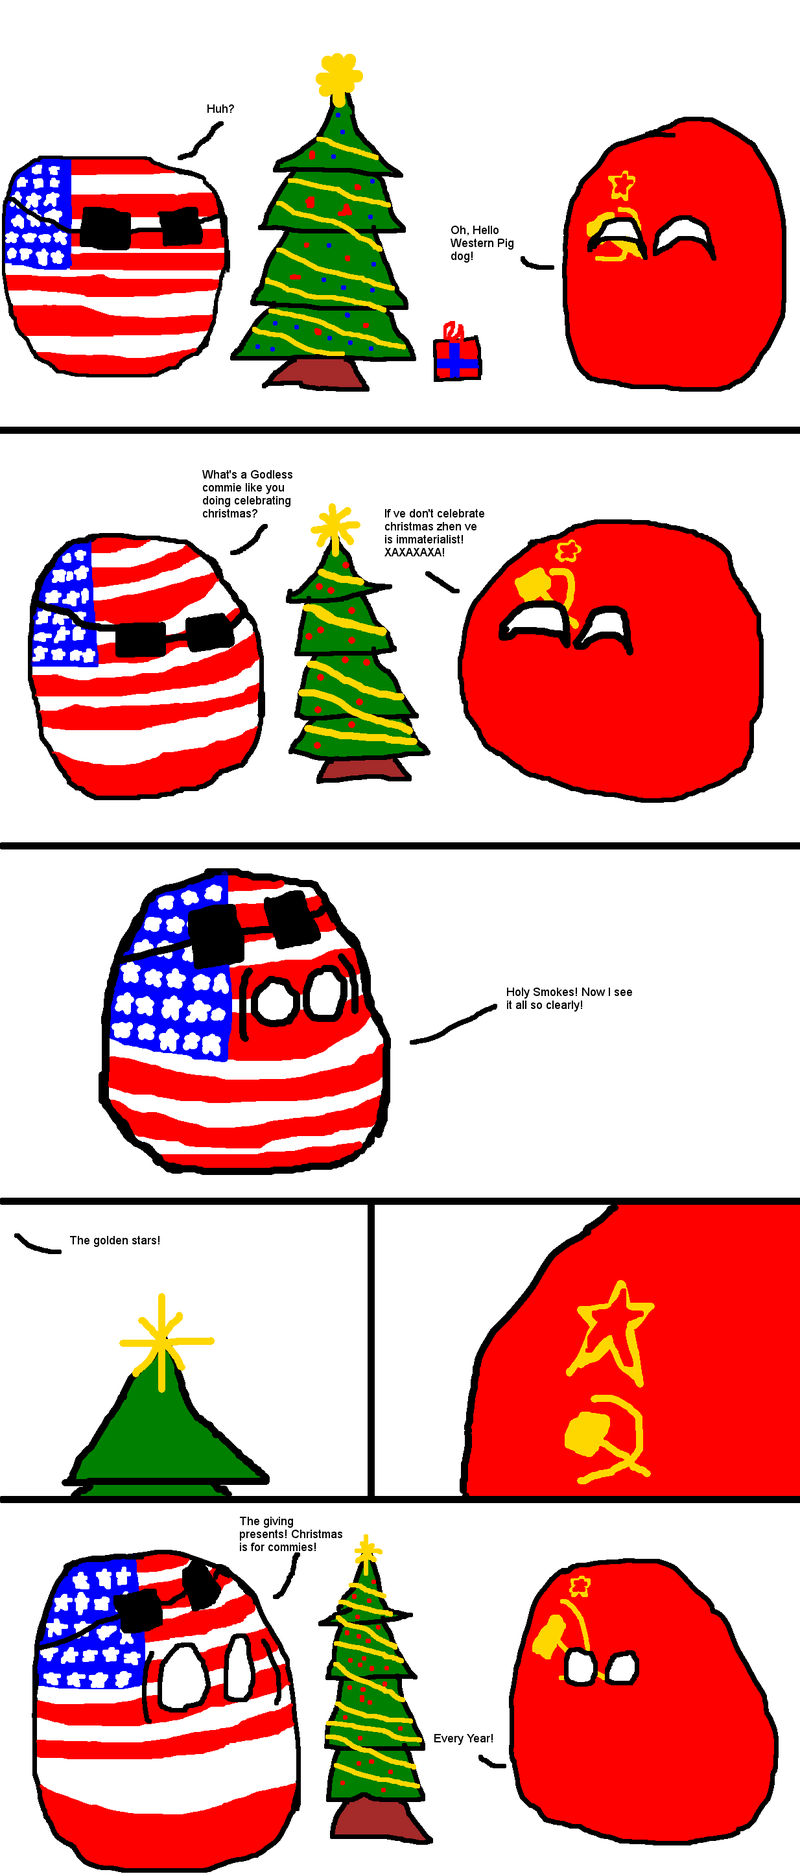 Happy Holidays commies